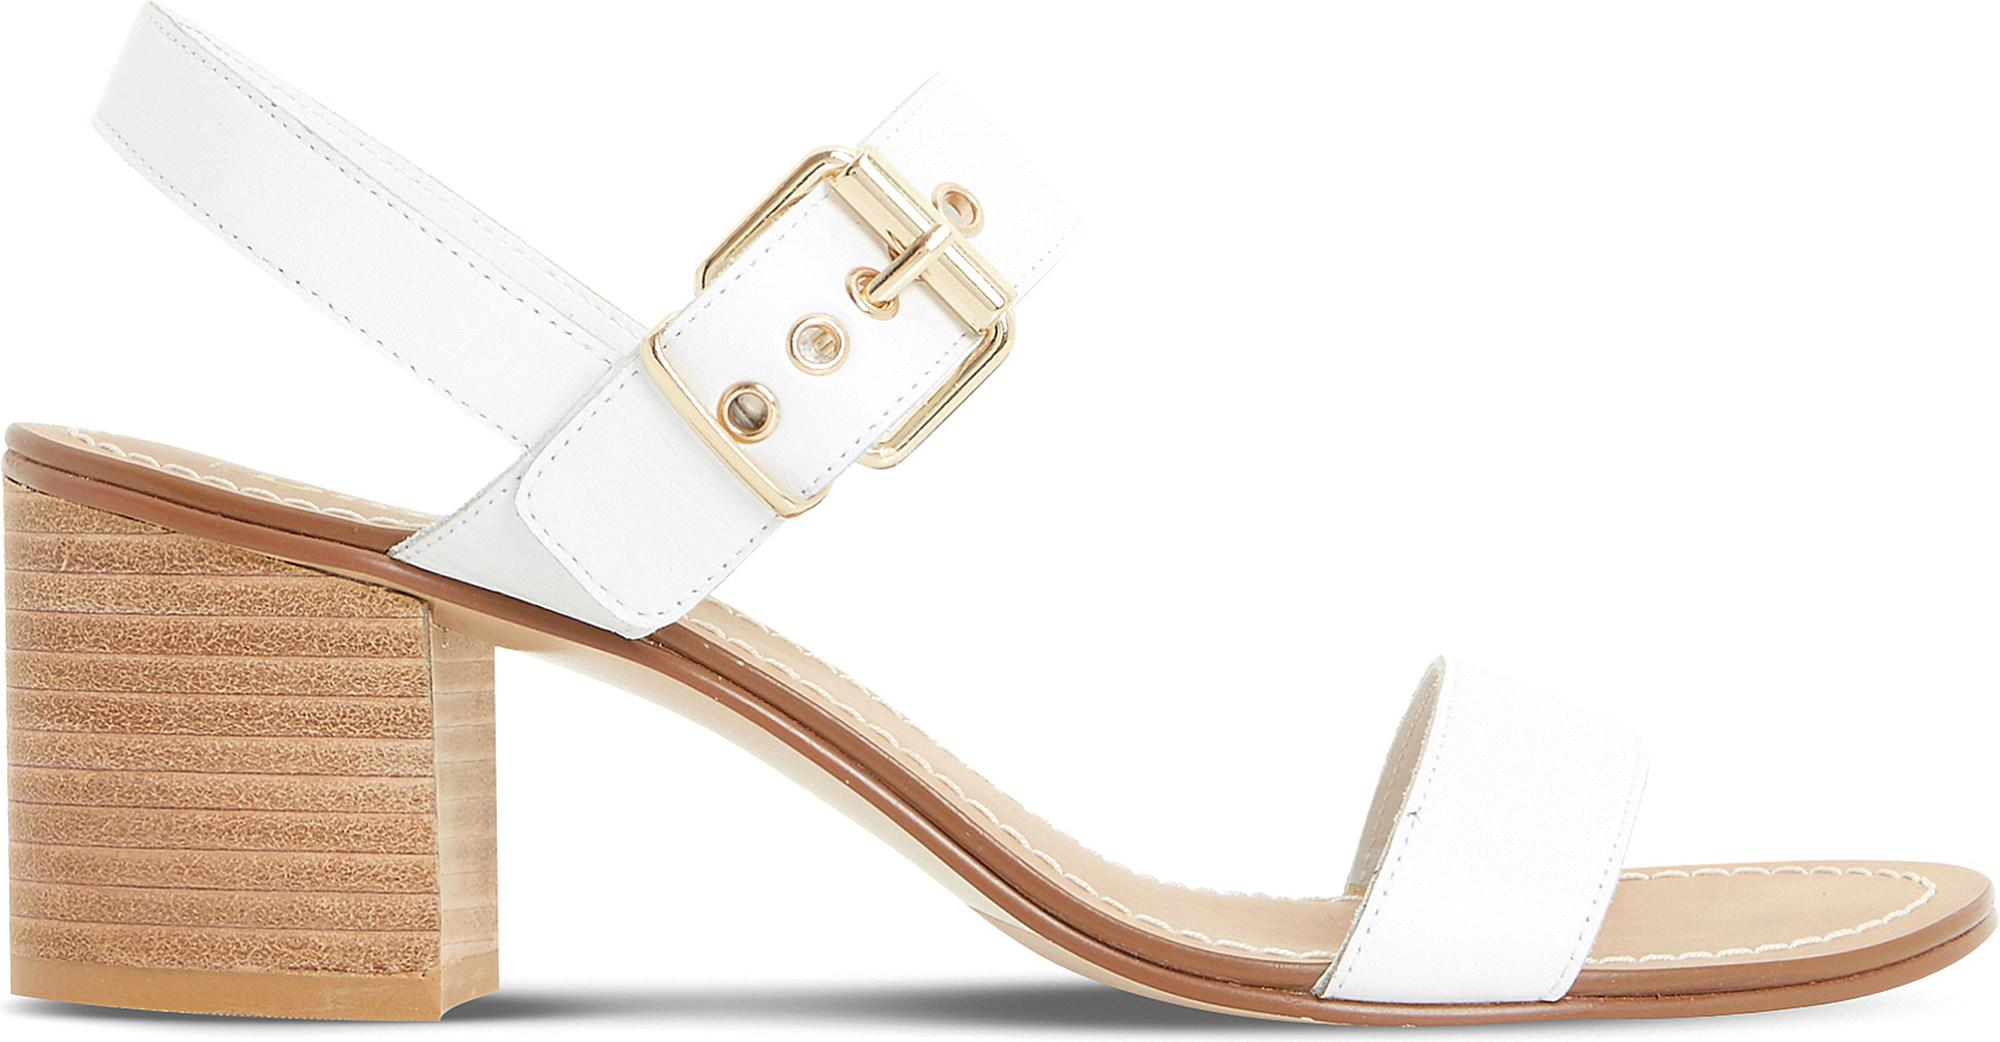 Dune Jany Leather Stack Heel Sandal Free Shipping For Cheap cGm4dZxf1G